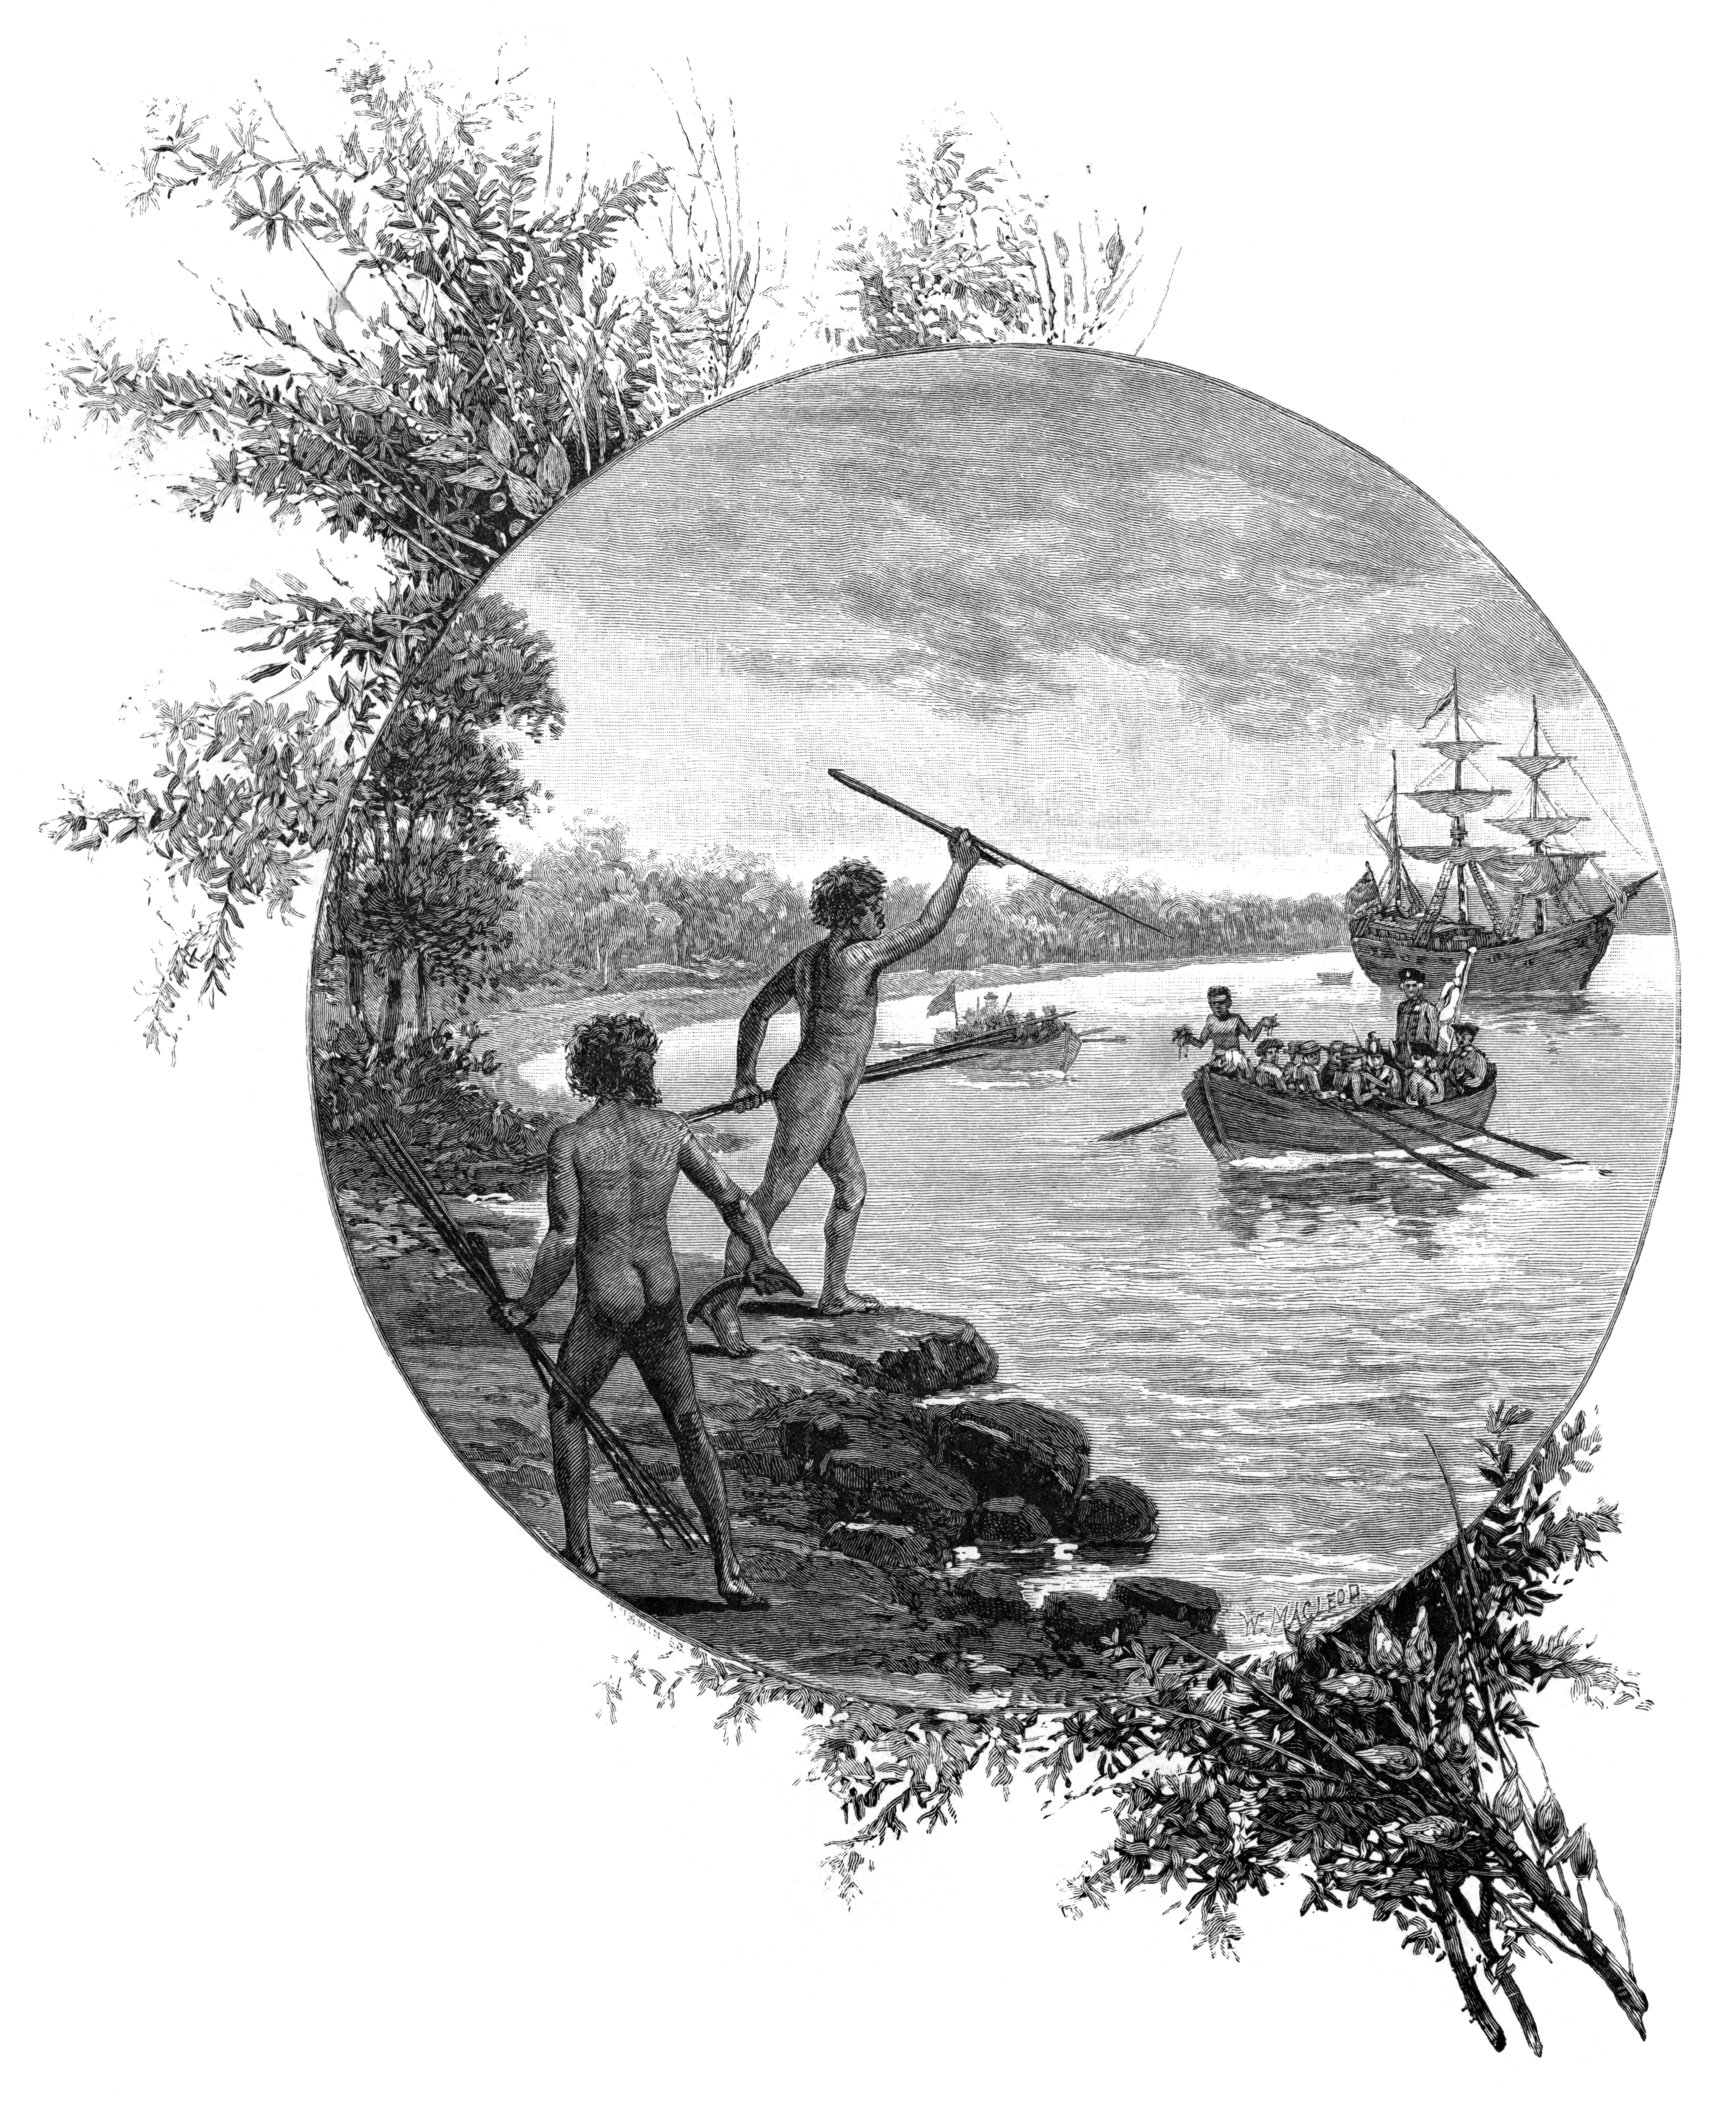 indeginous australia invasion settlement This article is missing information about the theories surrounding aboriginal farming, permanent settlement the encyclopaedia of aboriginal australia: aboriginal resistance to the european invasion of australia (unsw press, 2006.